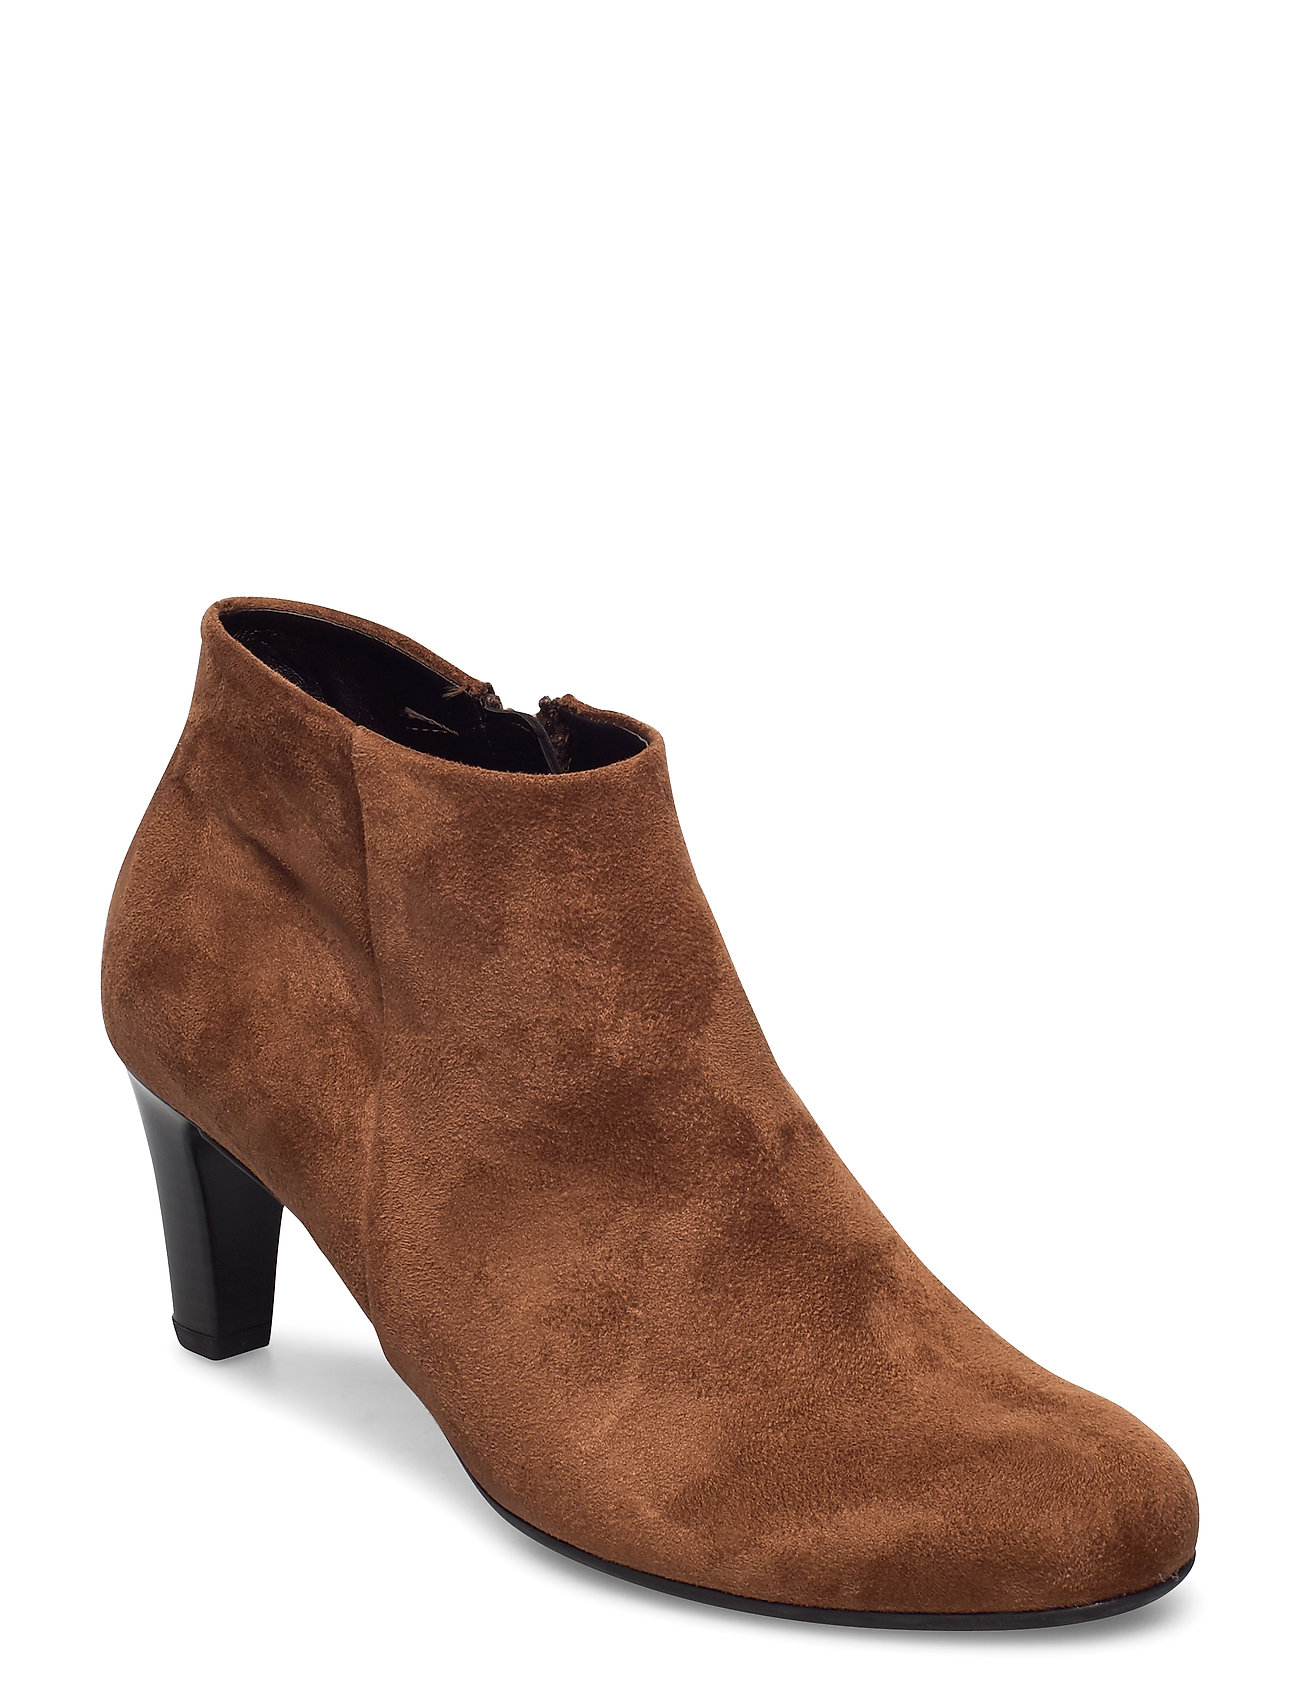 Image of Ankle Boot Shoes Boots Ankle Boots Ankle Boot - Heel Brun Gabor (3437565809)